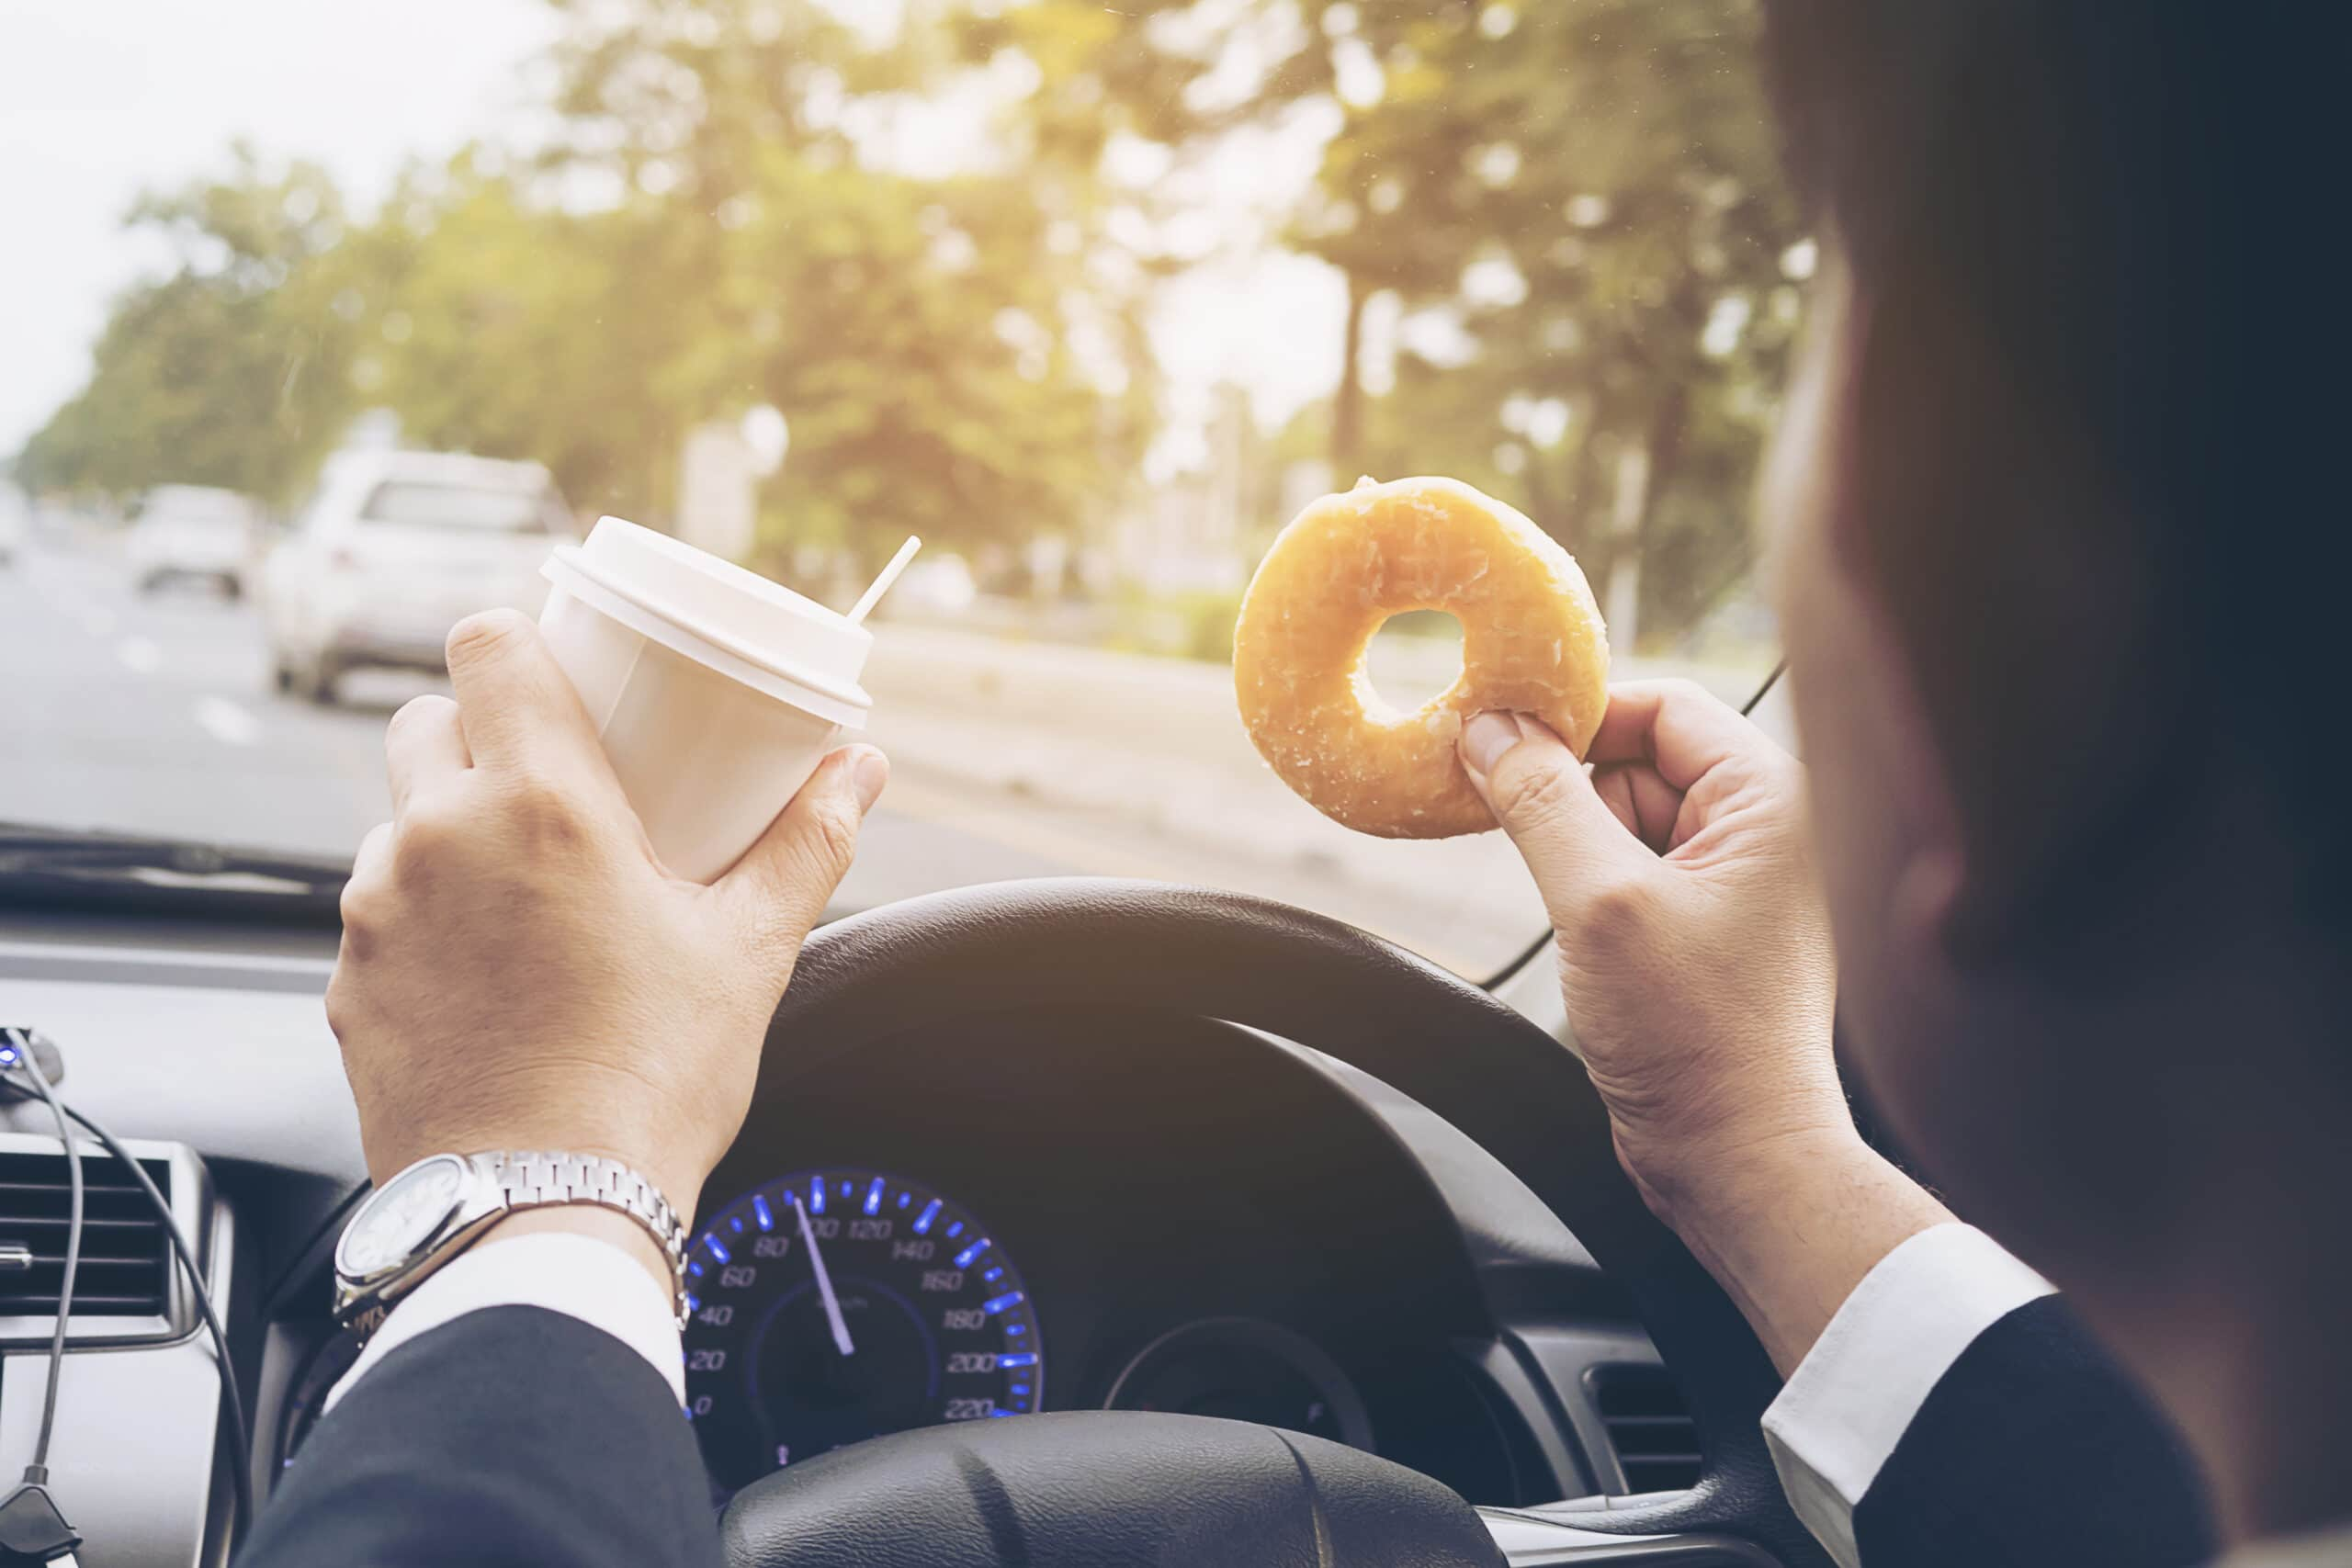 A man holds a portable coffee cup and donut while driving, indicating commute to work.